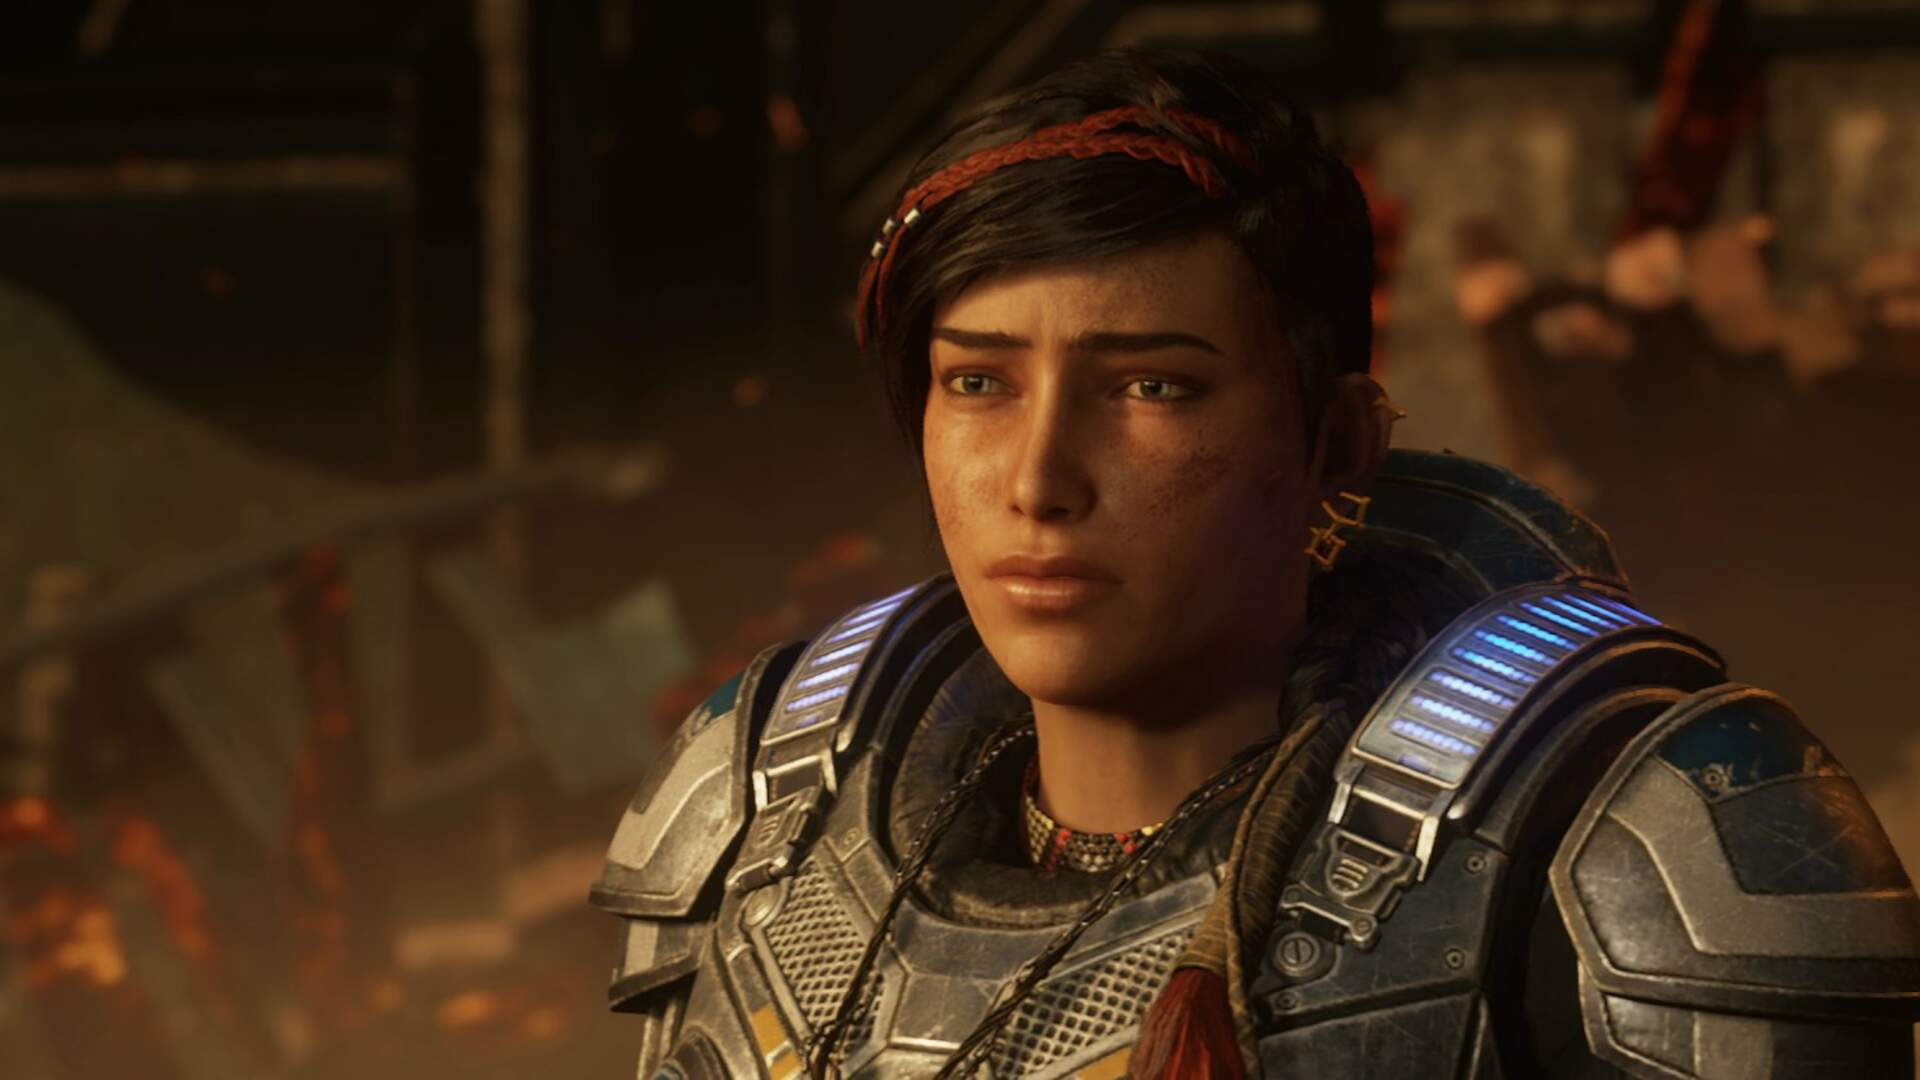 Gears 5 Spoiler FAQ - All Gears 5 Endings and Questions Answered